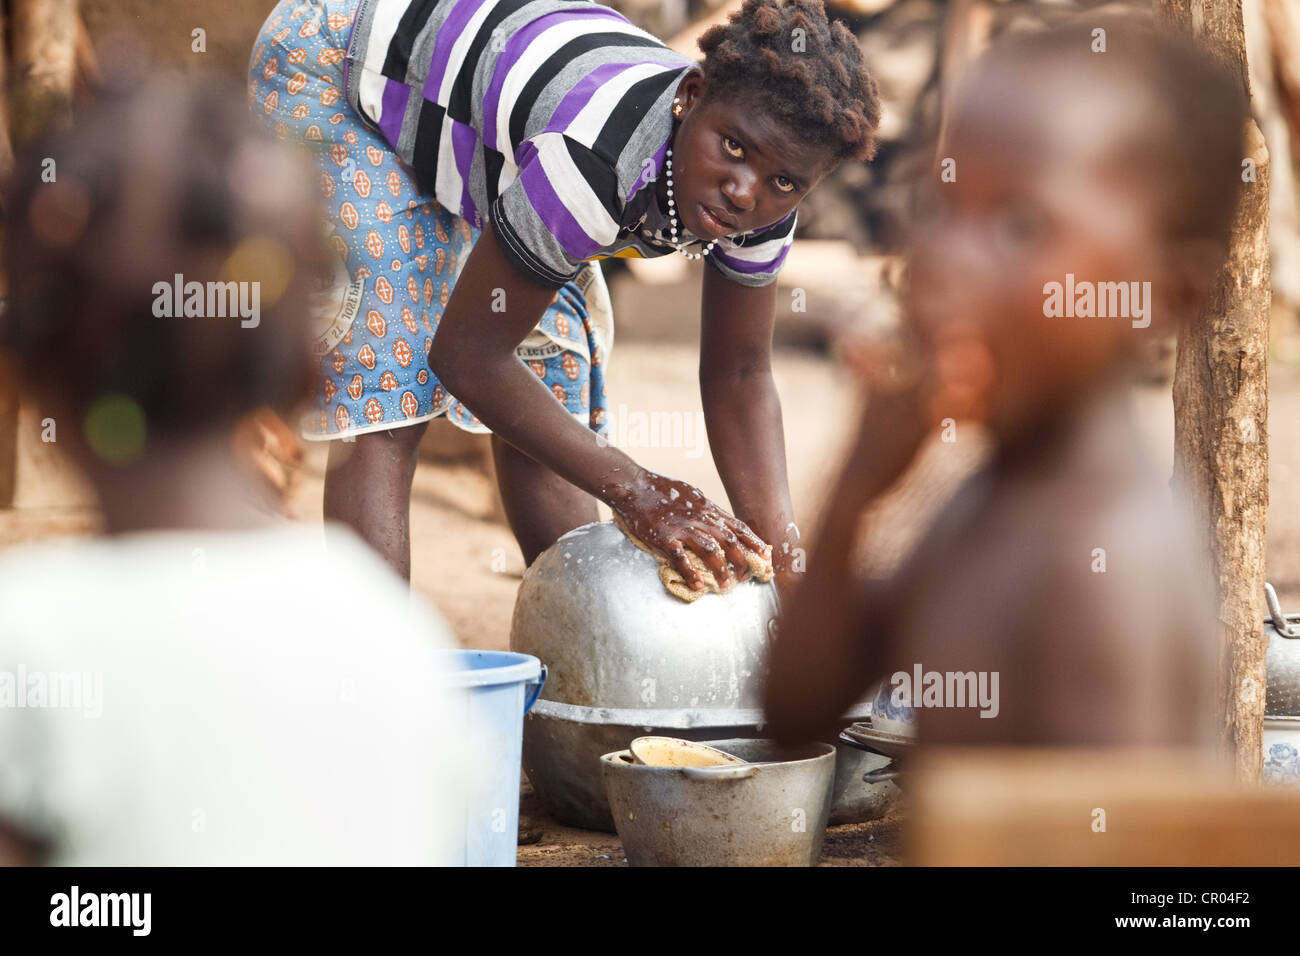 Afoua Clarisse, who doesn't know her age, cleans dishes outside her home in the village of Kiendi-Walogo, Zanzan - Stock Image